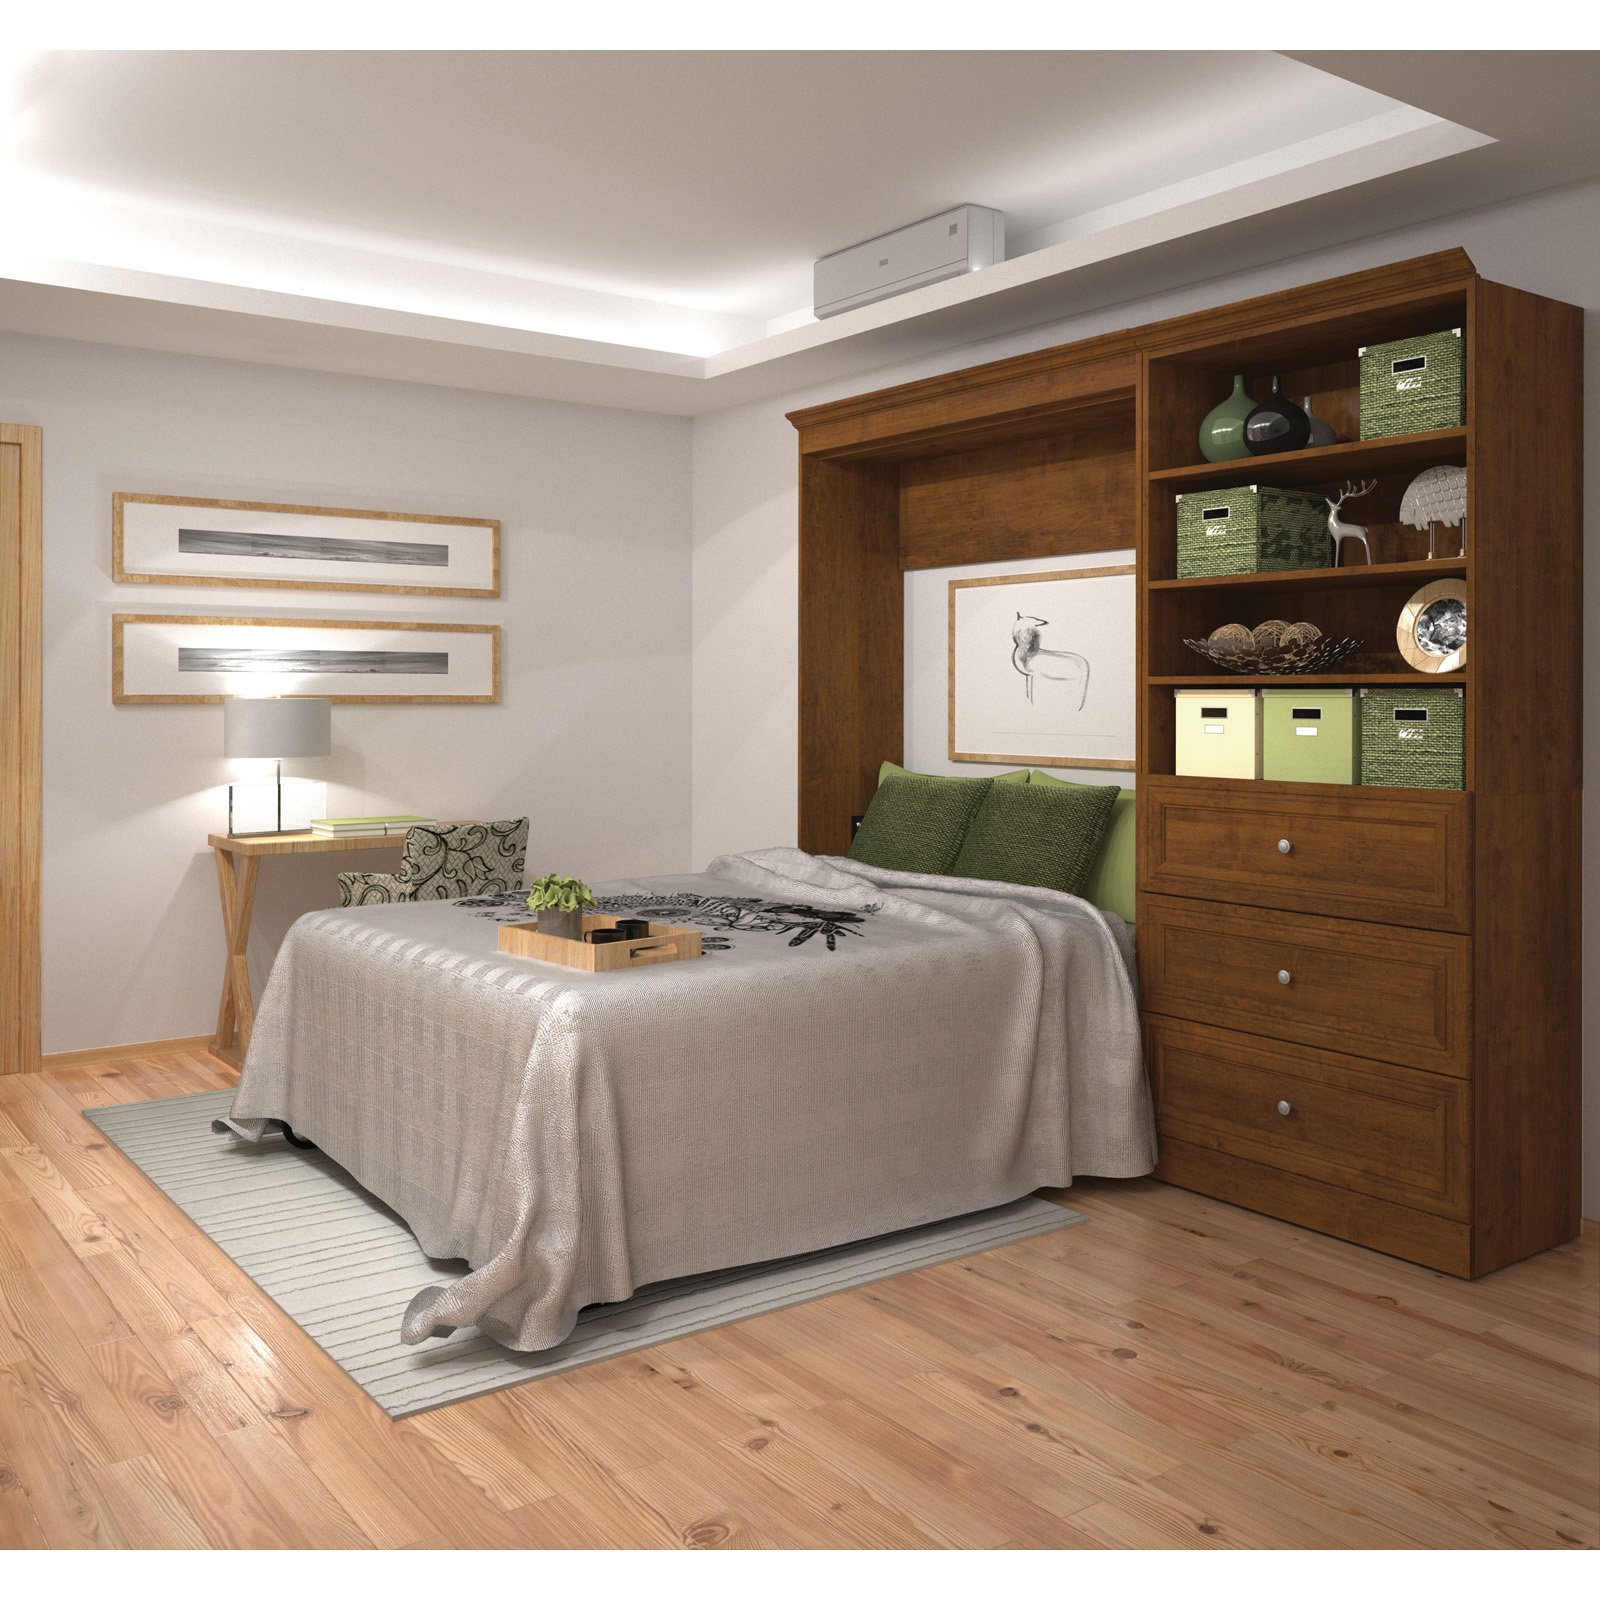 Versatile by Bestar 101'' Queen Wall bed kit in Tuscany Brown